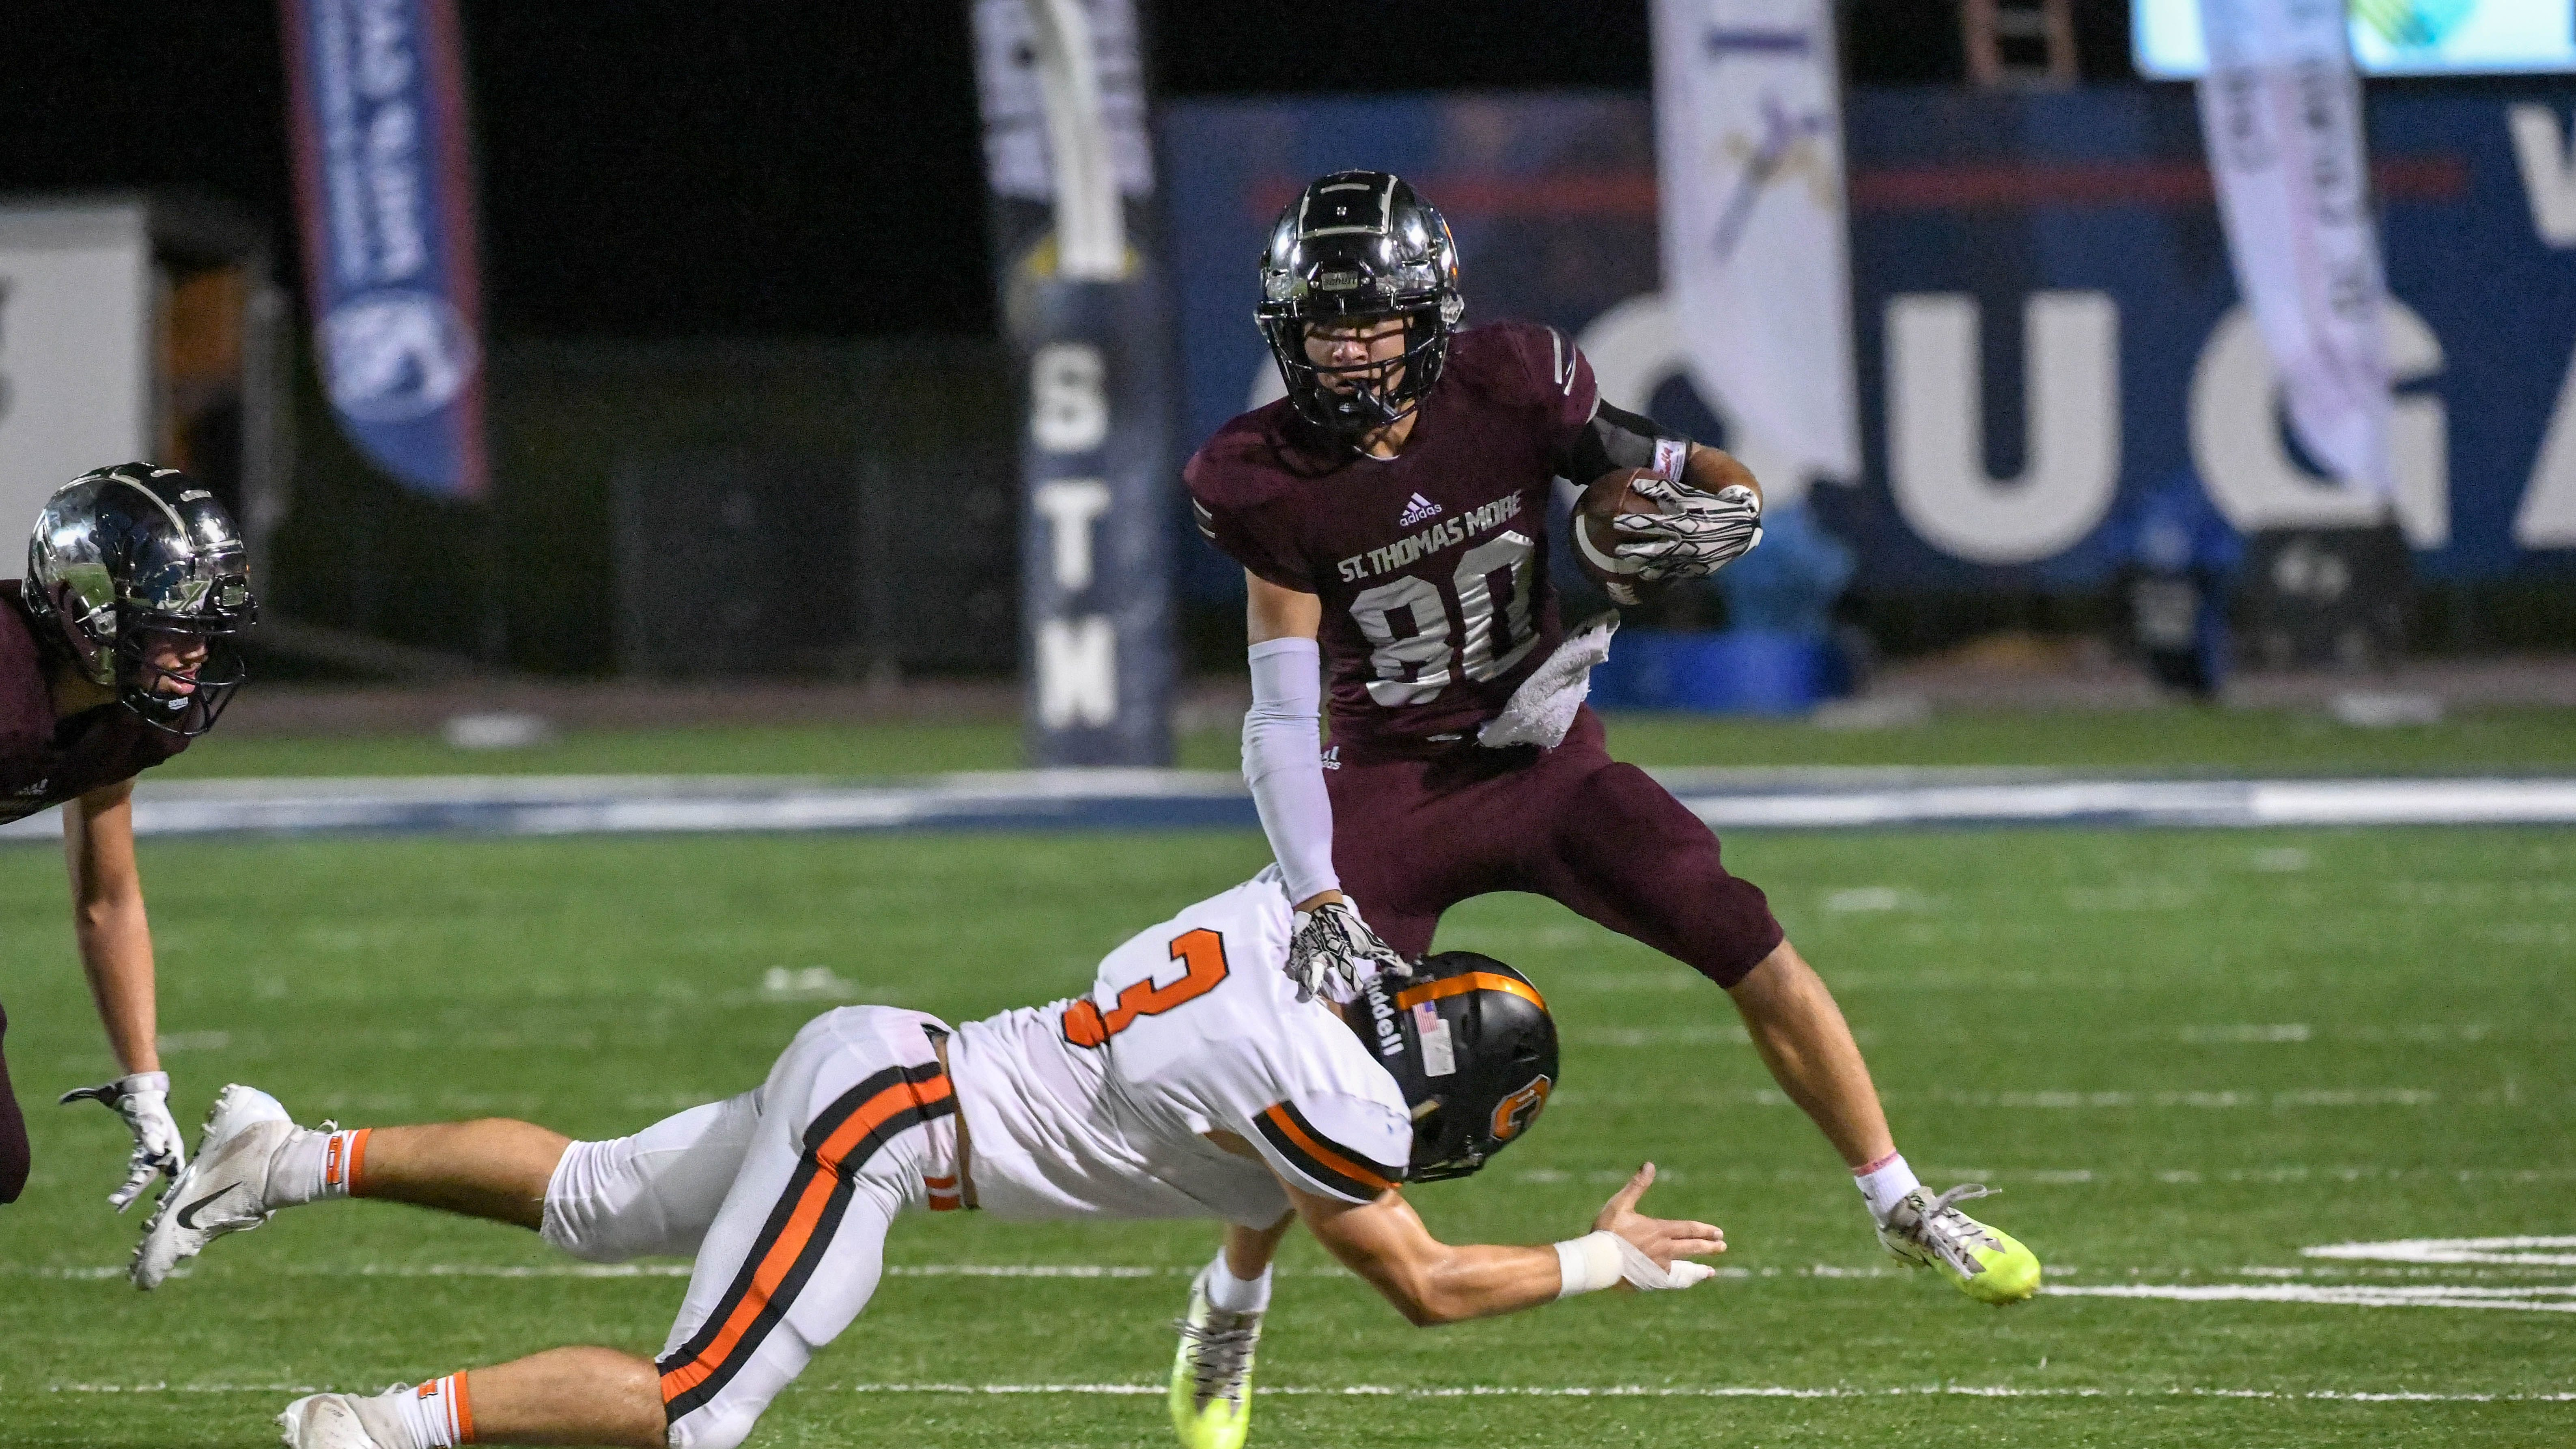 St. Thomas More wide receiver Grant Arceneaux collected 12 receptions for 225 yards and four touchdowns in the Cougars' 52-43 loss to Catholic High on Friday.